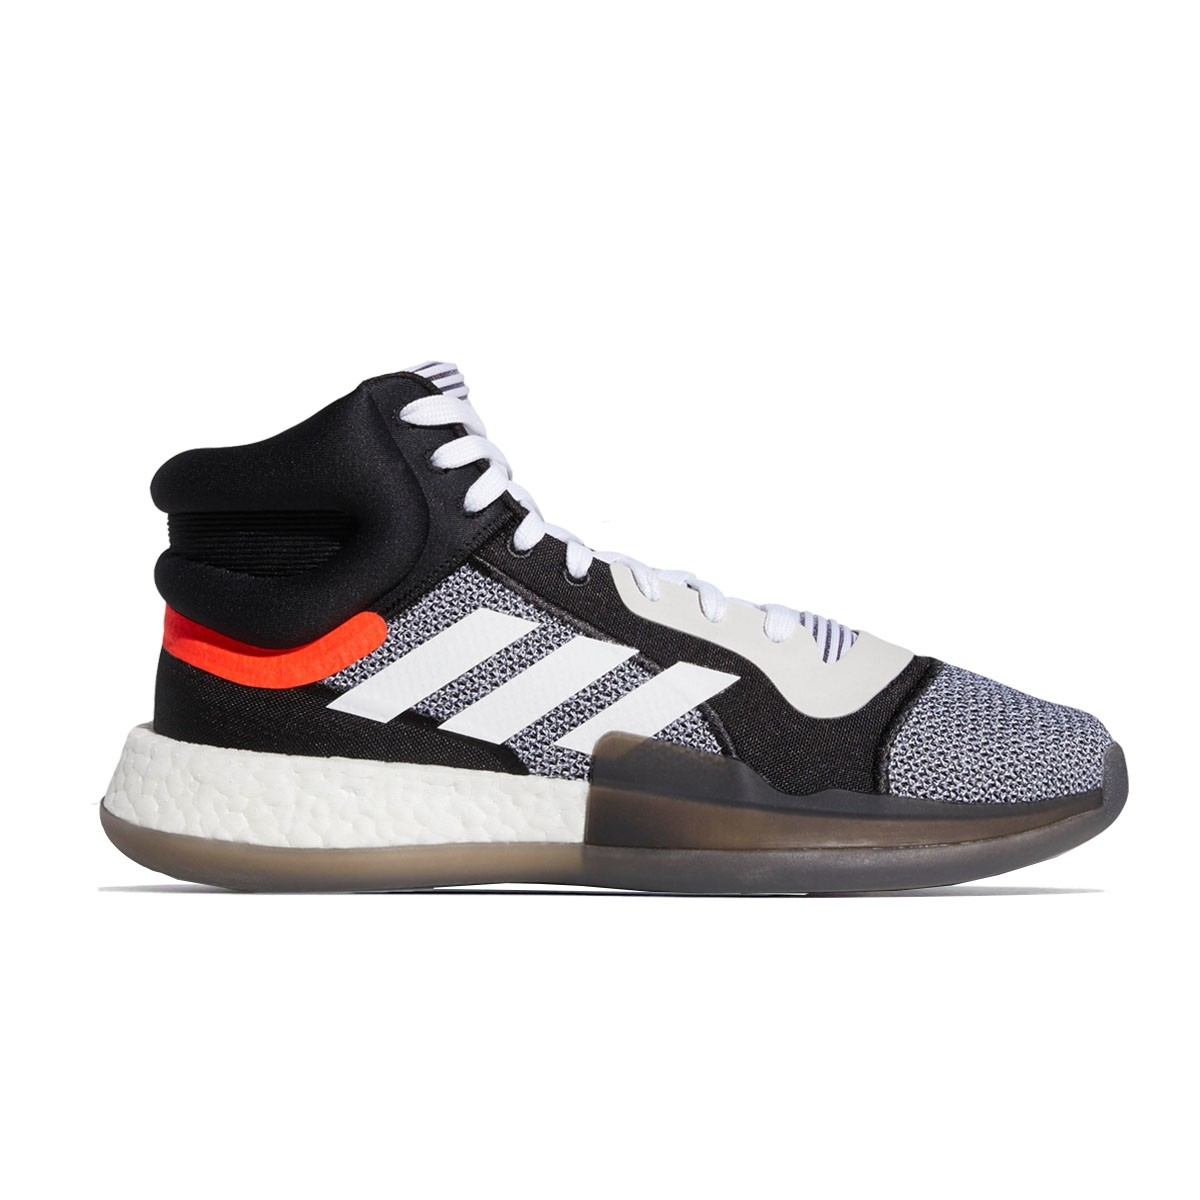 ADIDAS Marquee Boost 'Core Black'